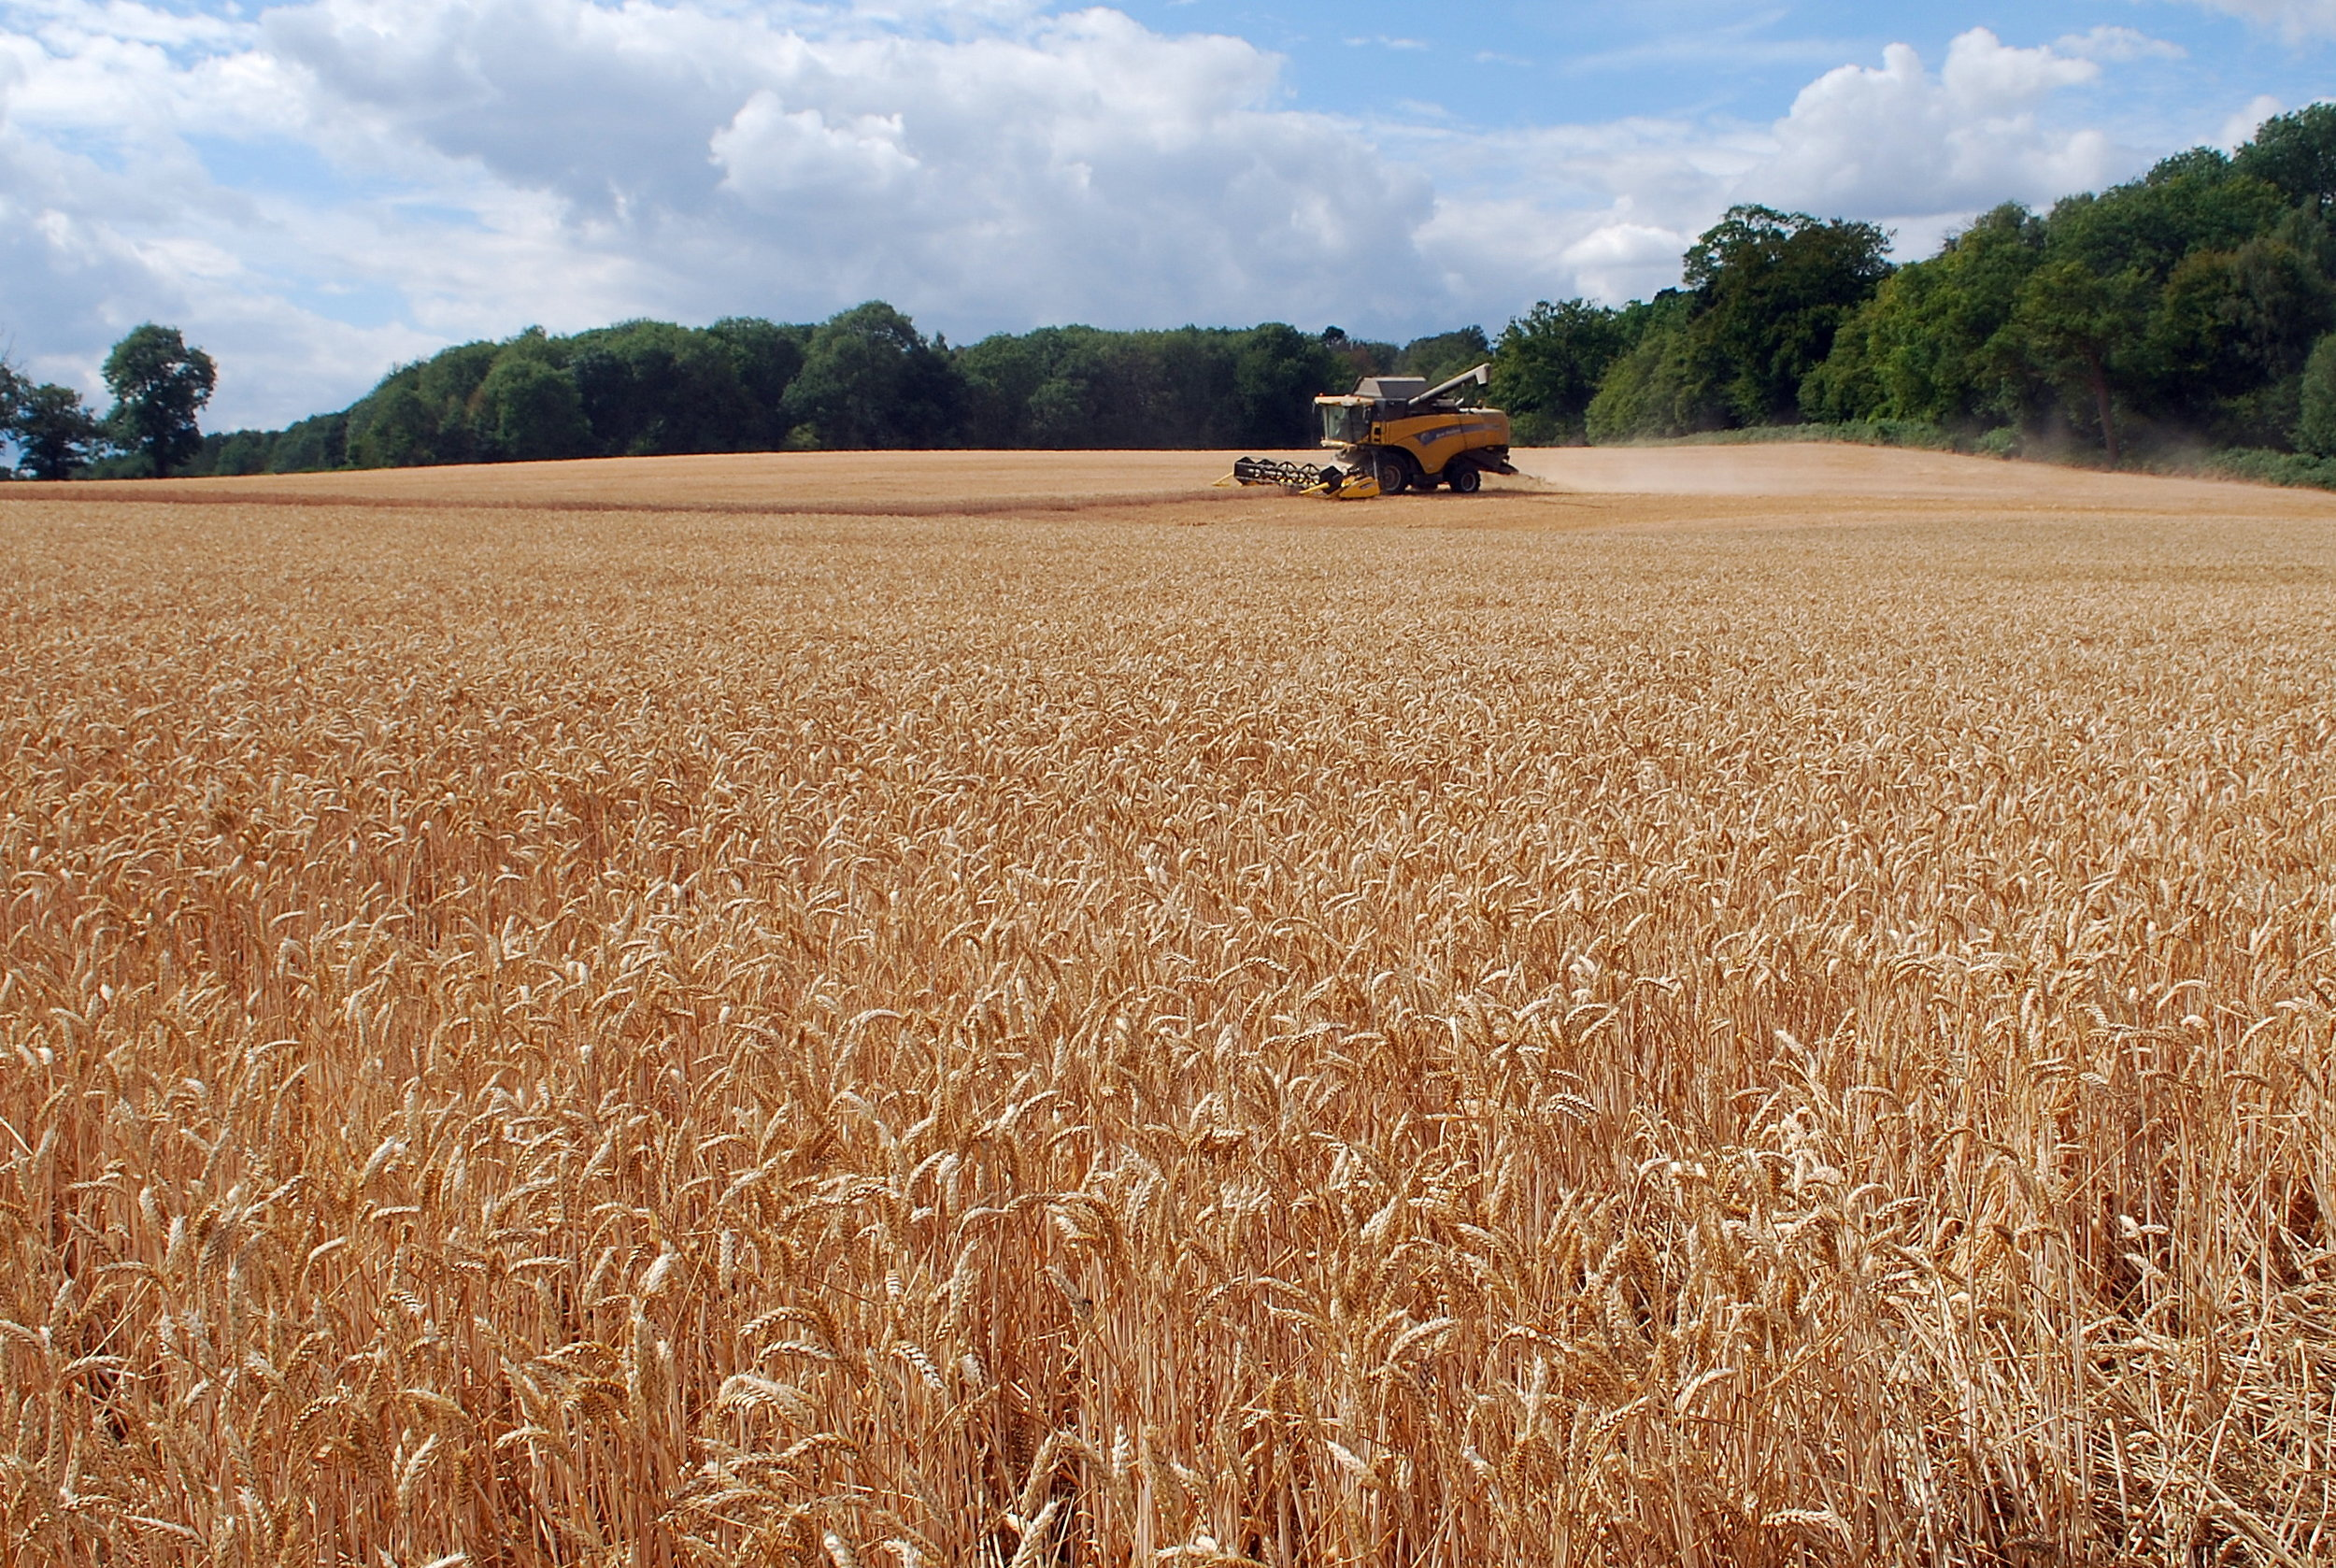 Combine harvesting wheat. Image by Lynda Bullock.